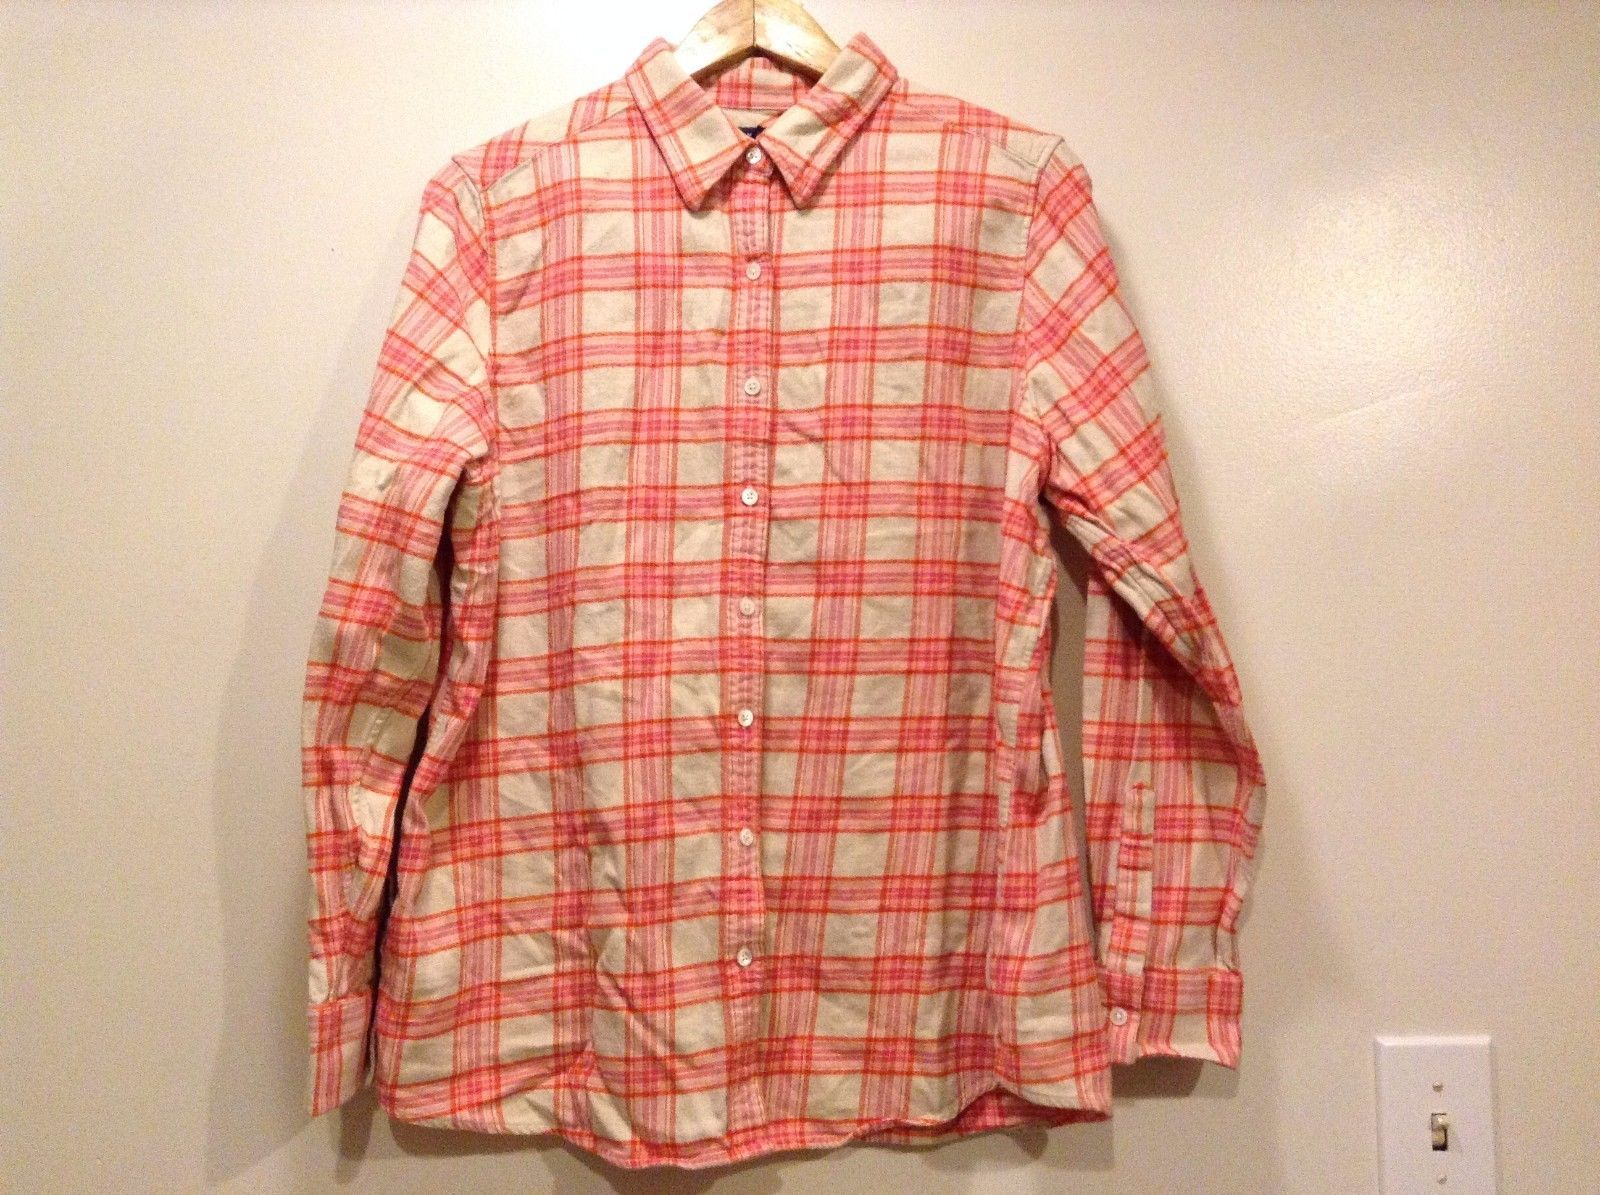 Great Condition Land's End Size 1x 100% Cotton Cream Pink Plaid Button Up Shirt